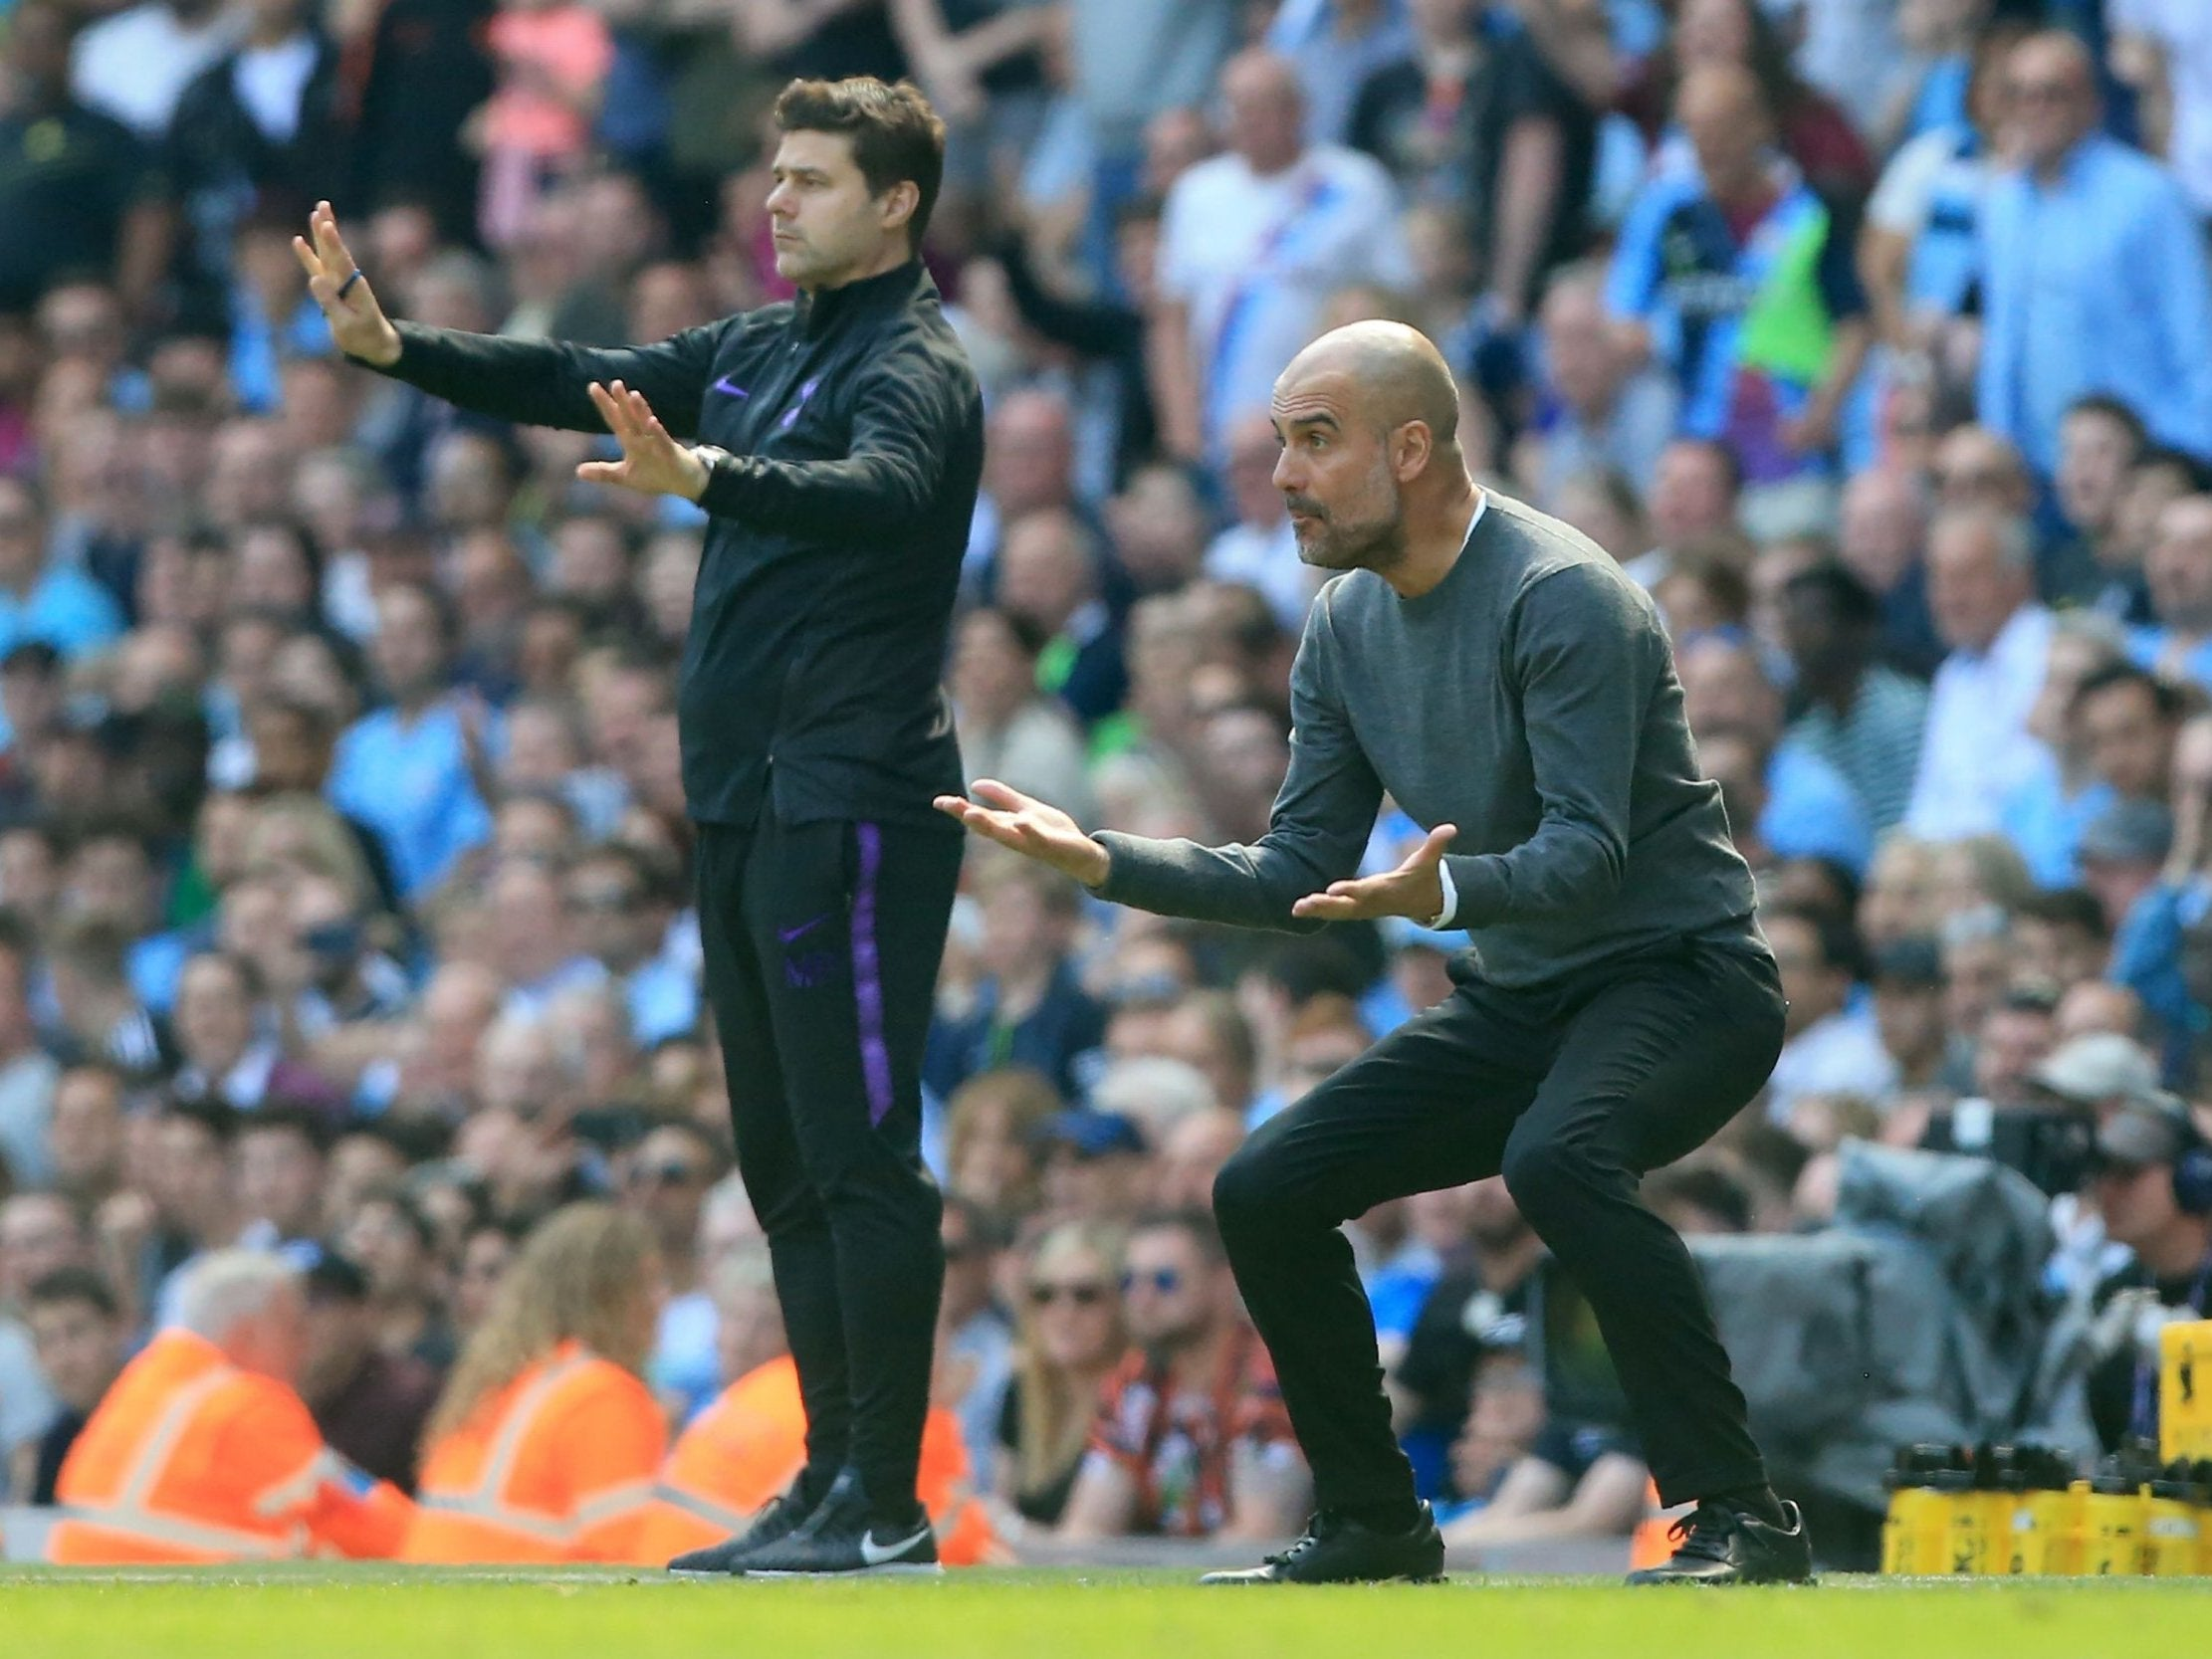 Man City vs Tottenham trilogy: 10 things we learned from Premier League and Champions League series - The Independent image